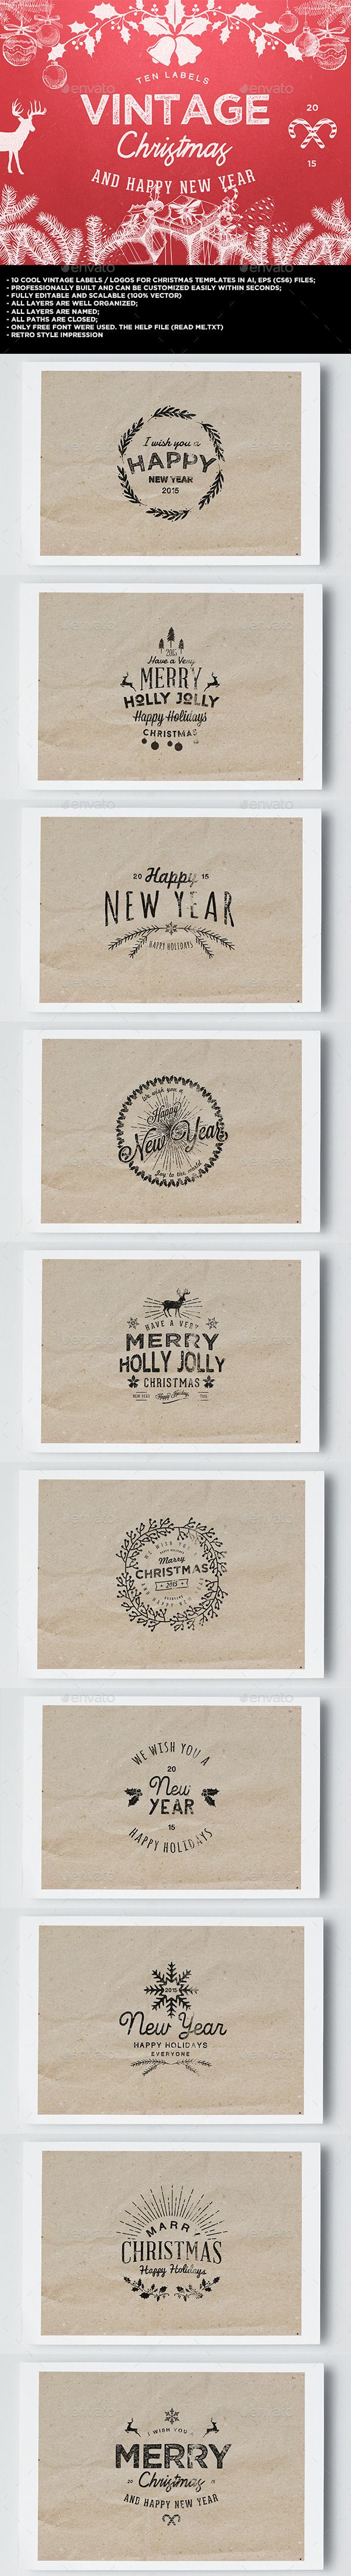 10 Logo Vintage Christmas / New Year | Buy and Download: http://graphicriver.net/item/10-logo-vintage-christmas-new-year/9748192?ref=ksioks